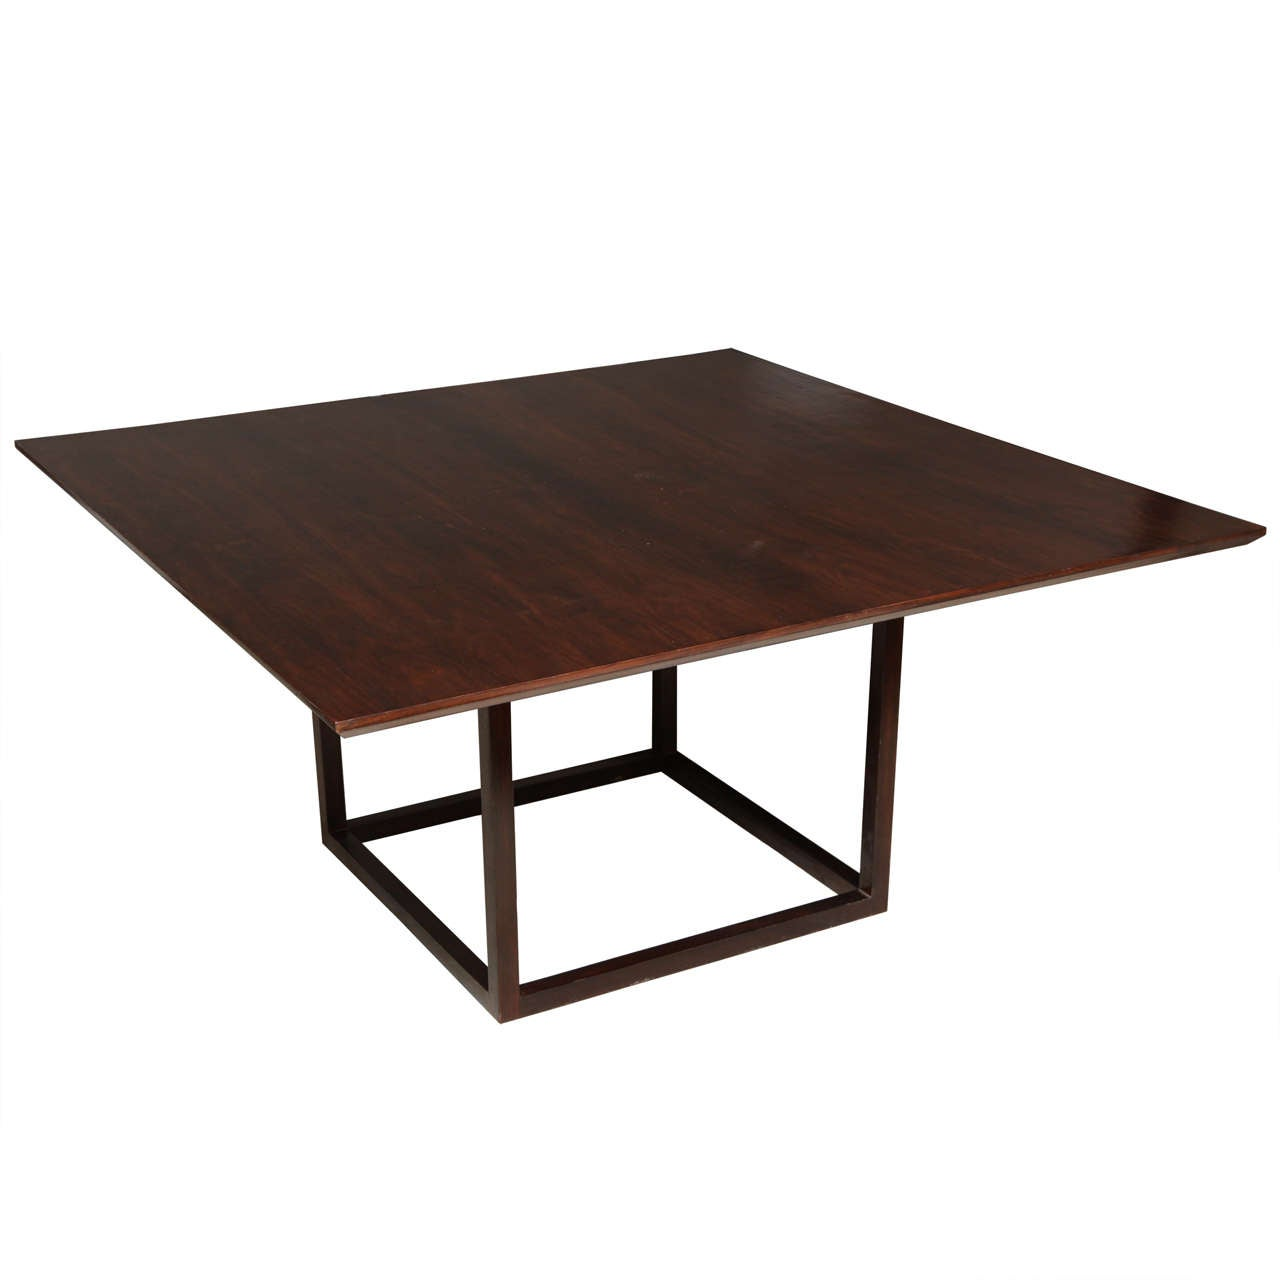 Lucca & Co, Made to Order, Walnut Dining Table For Sale